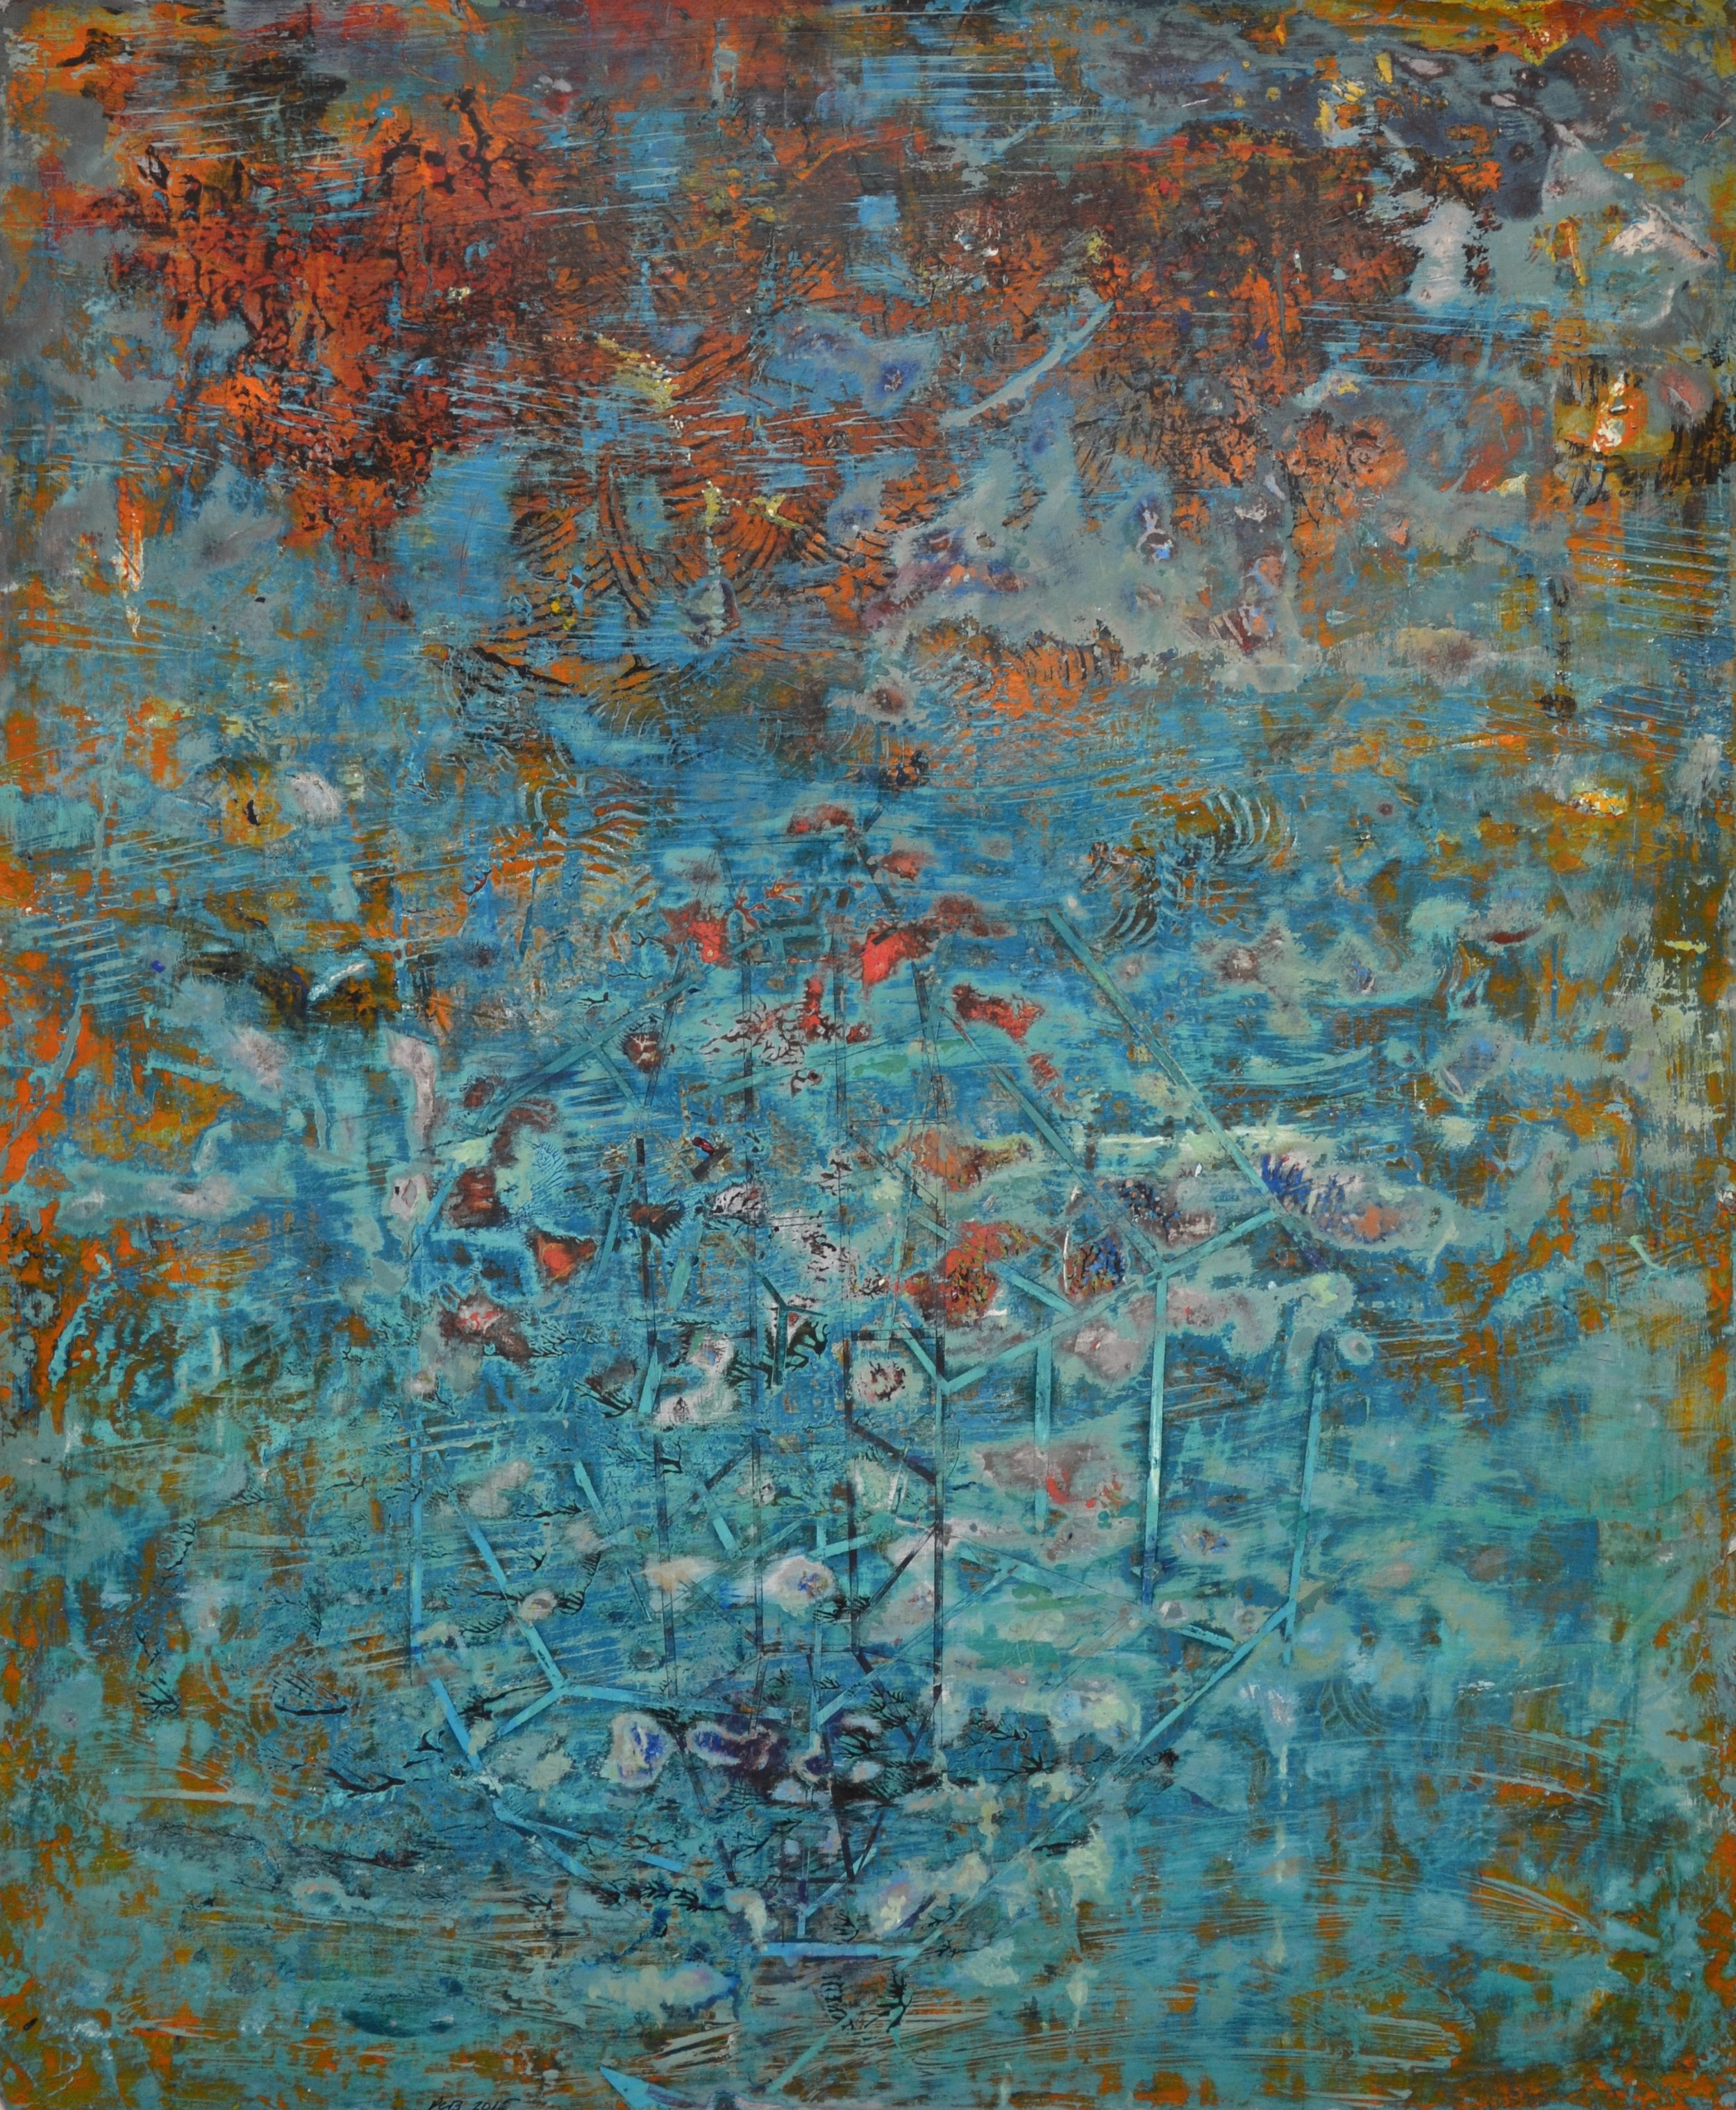 Untitled (Coral Sea, 1942)   17 x 14 inches Acrylic on paper 2015